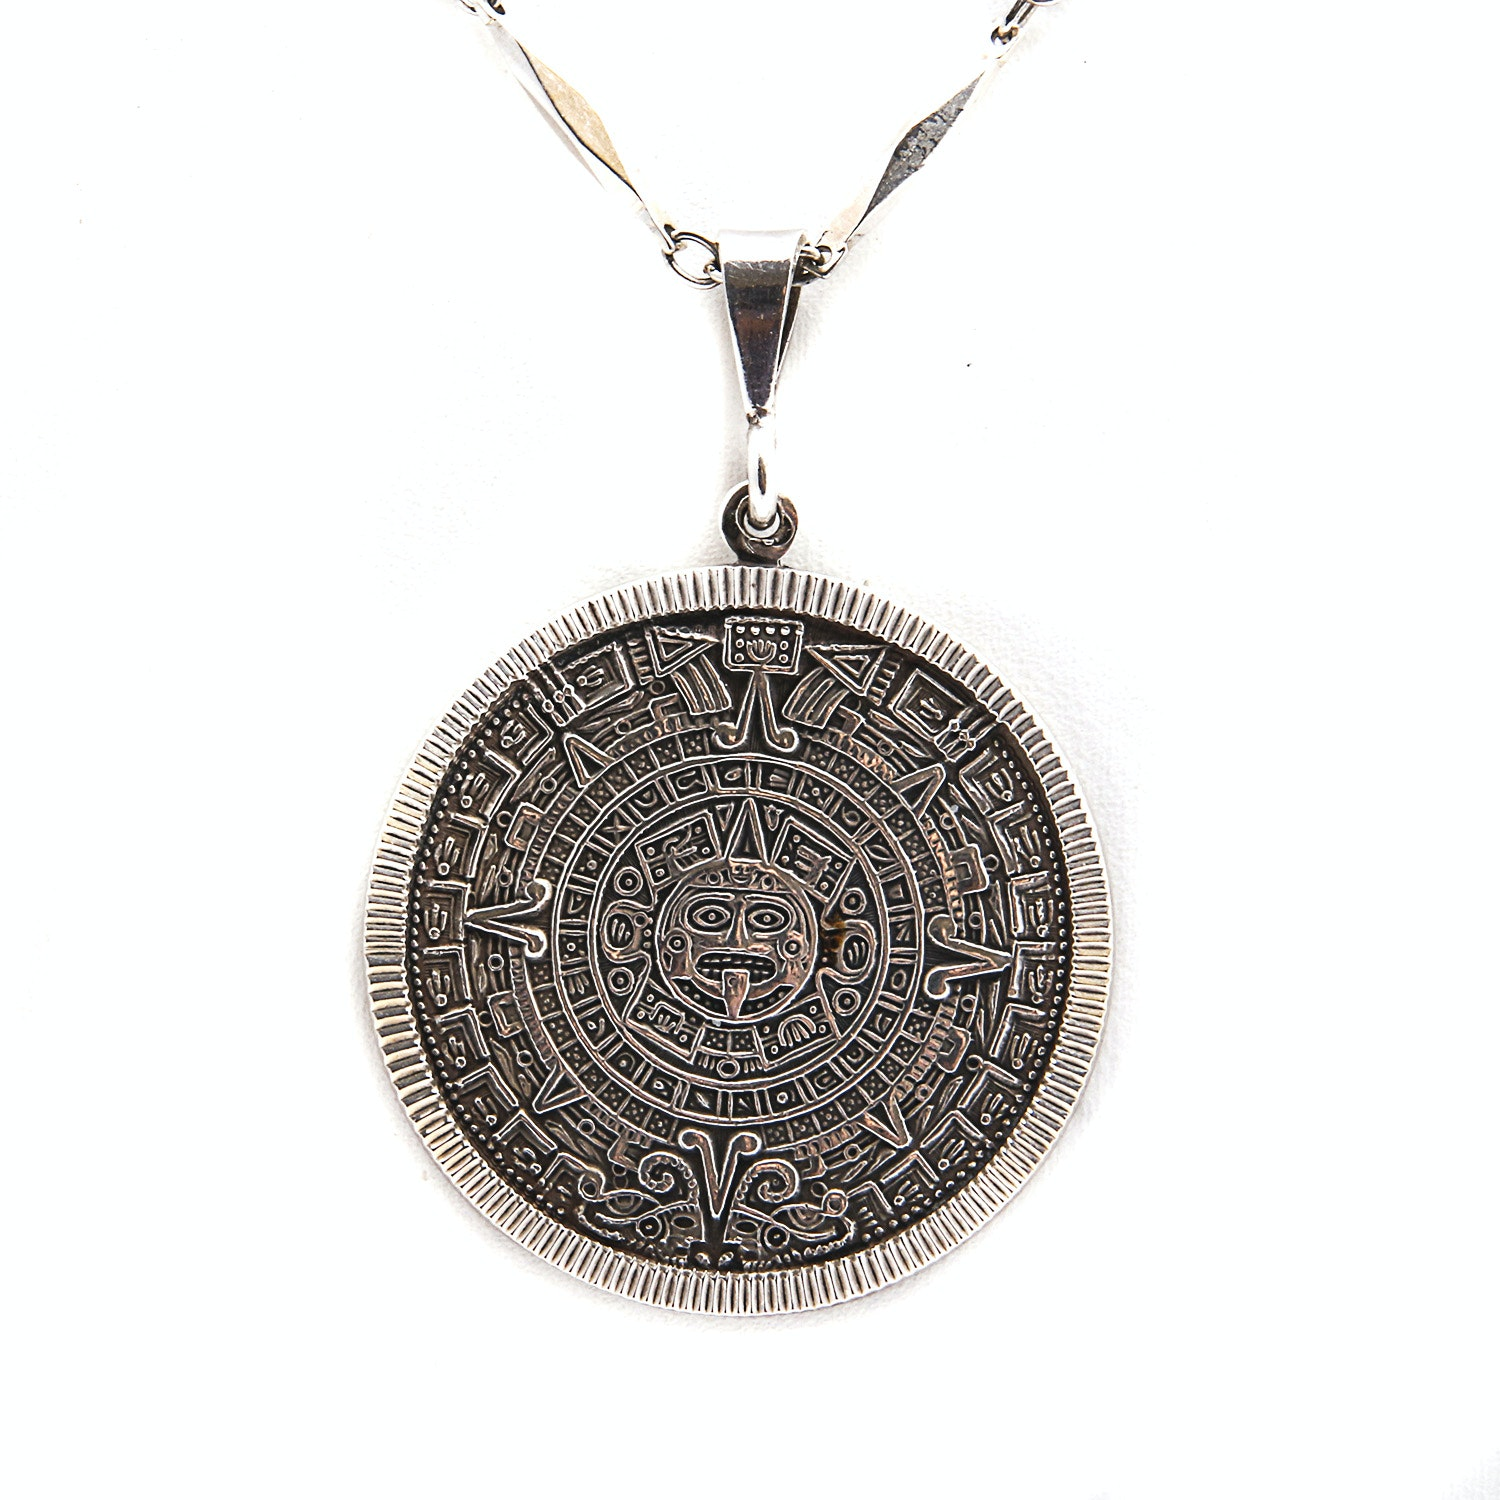 Necklace with Sterling Silver Medallion Pendant